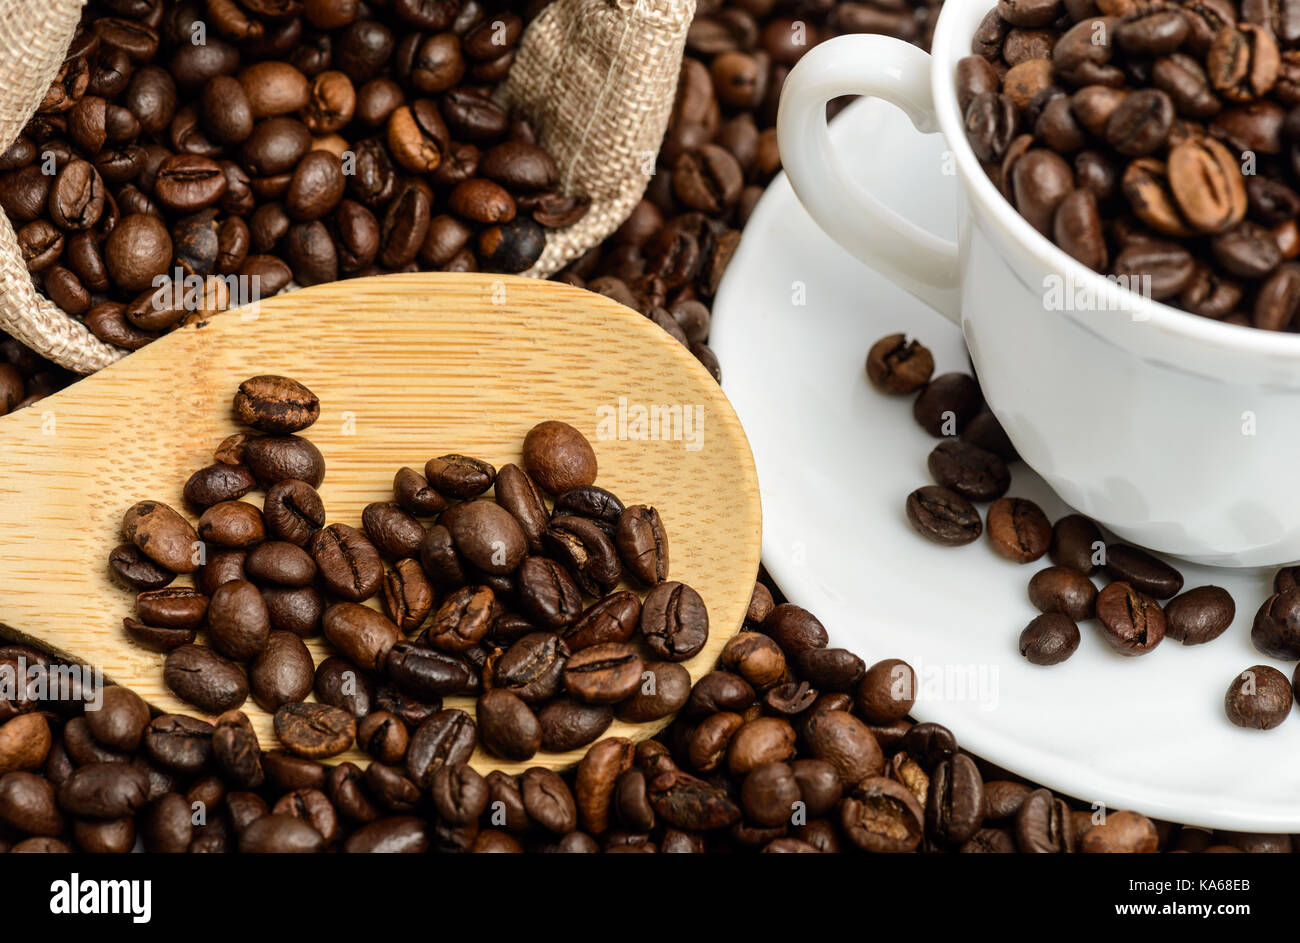 Coffee beans in jute sack  with wooden spoon and espresso cup. Top view - Stock Image